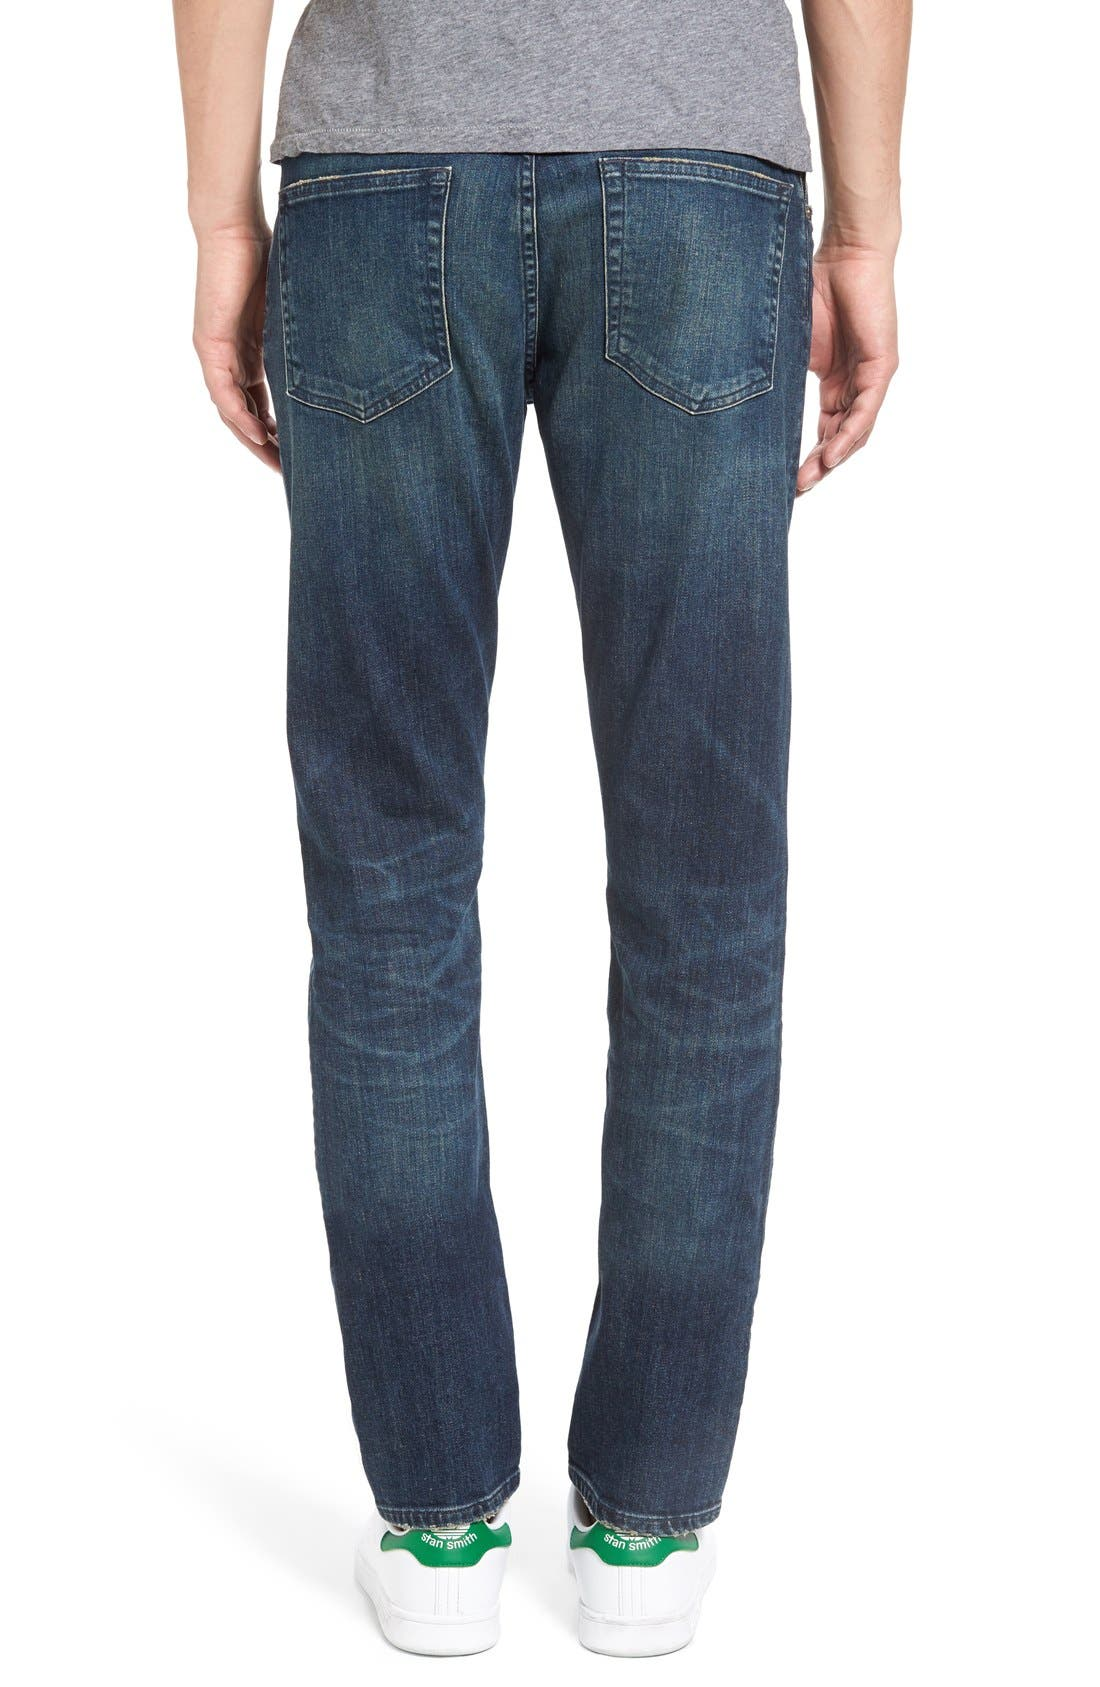 Bowery Slim Fit Jeans,                             Alternate thumbnail 3, color,                             463